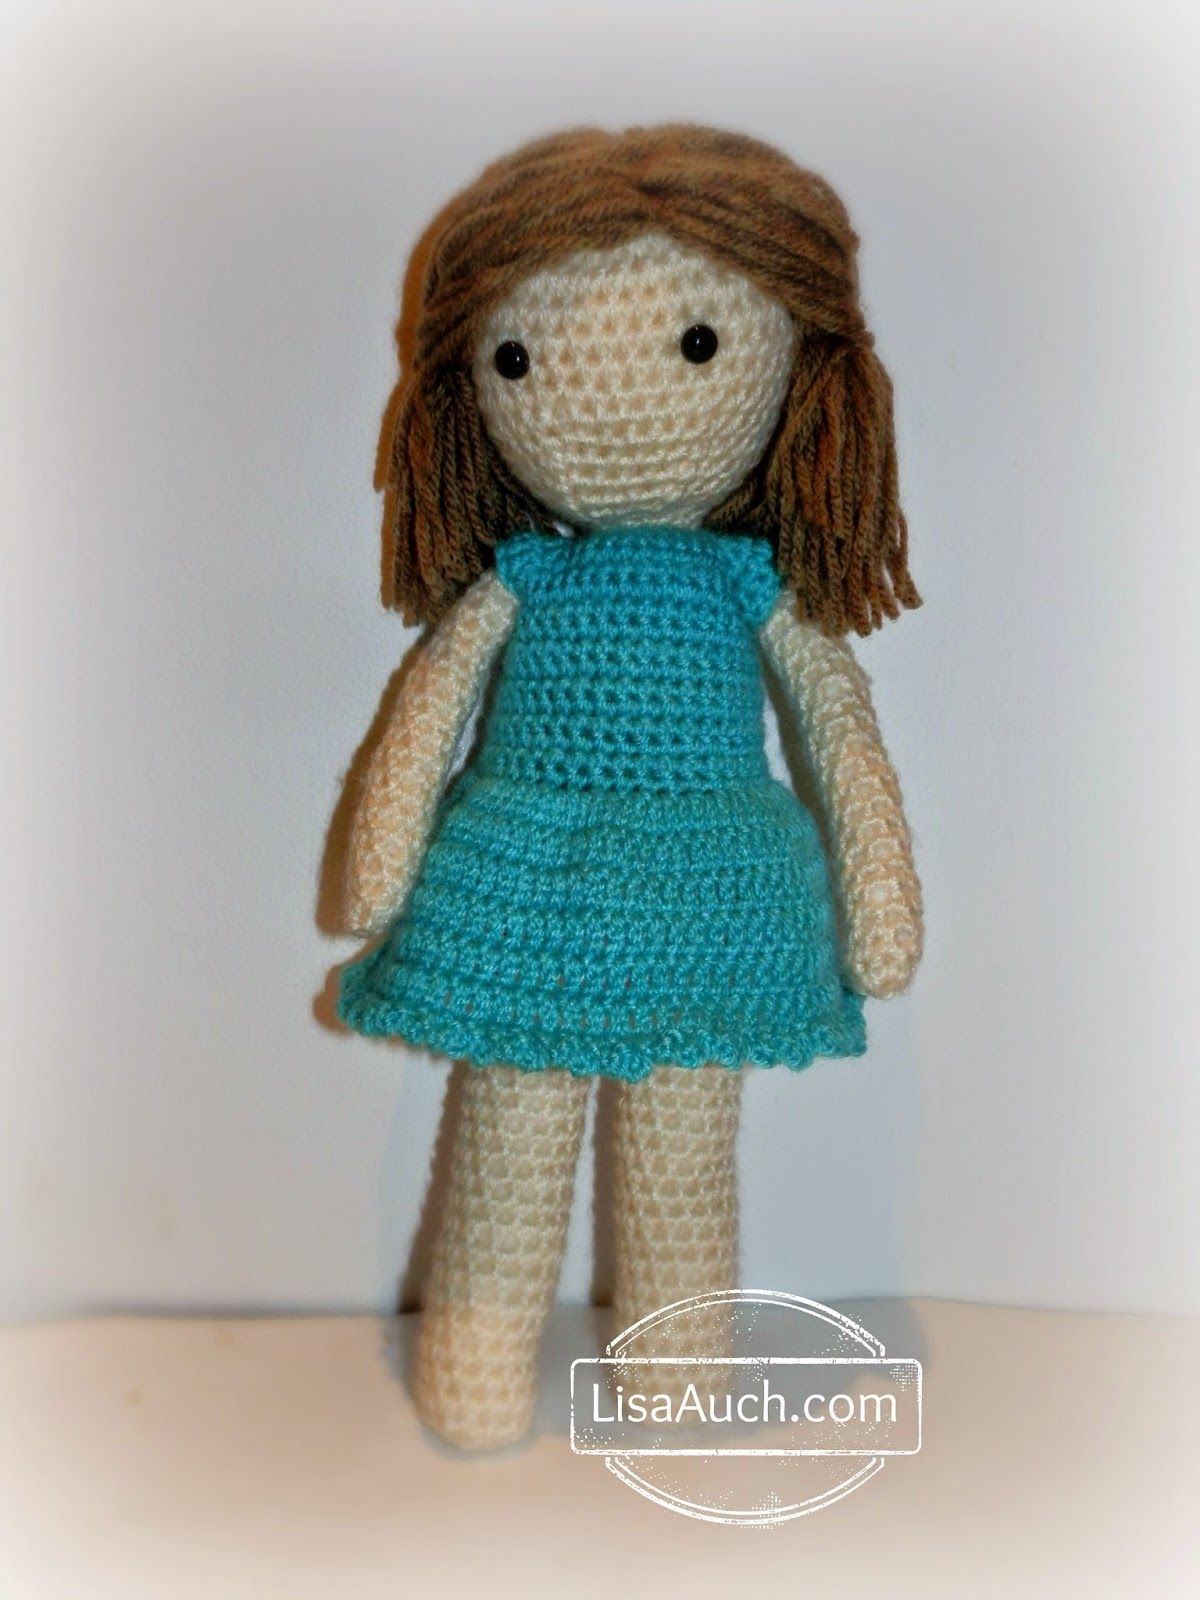 Crochet Patterns Doll Clothes : Blue Little Crochet Dolls Dress Free Pattern Free Crochet Patterns ...